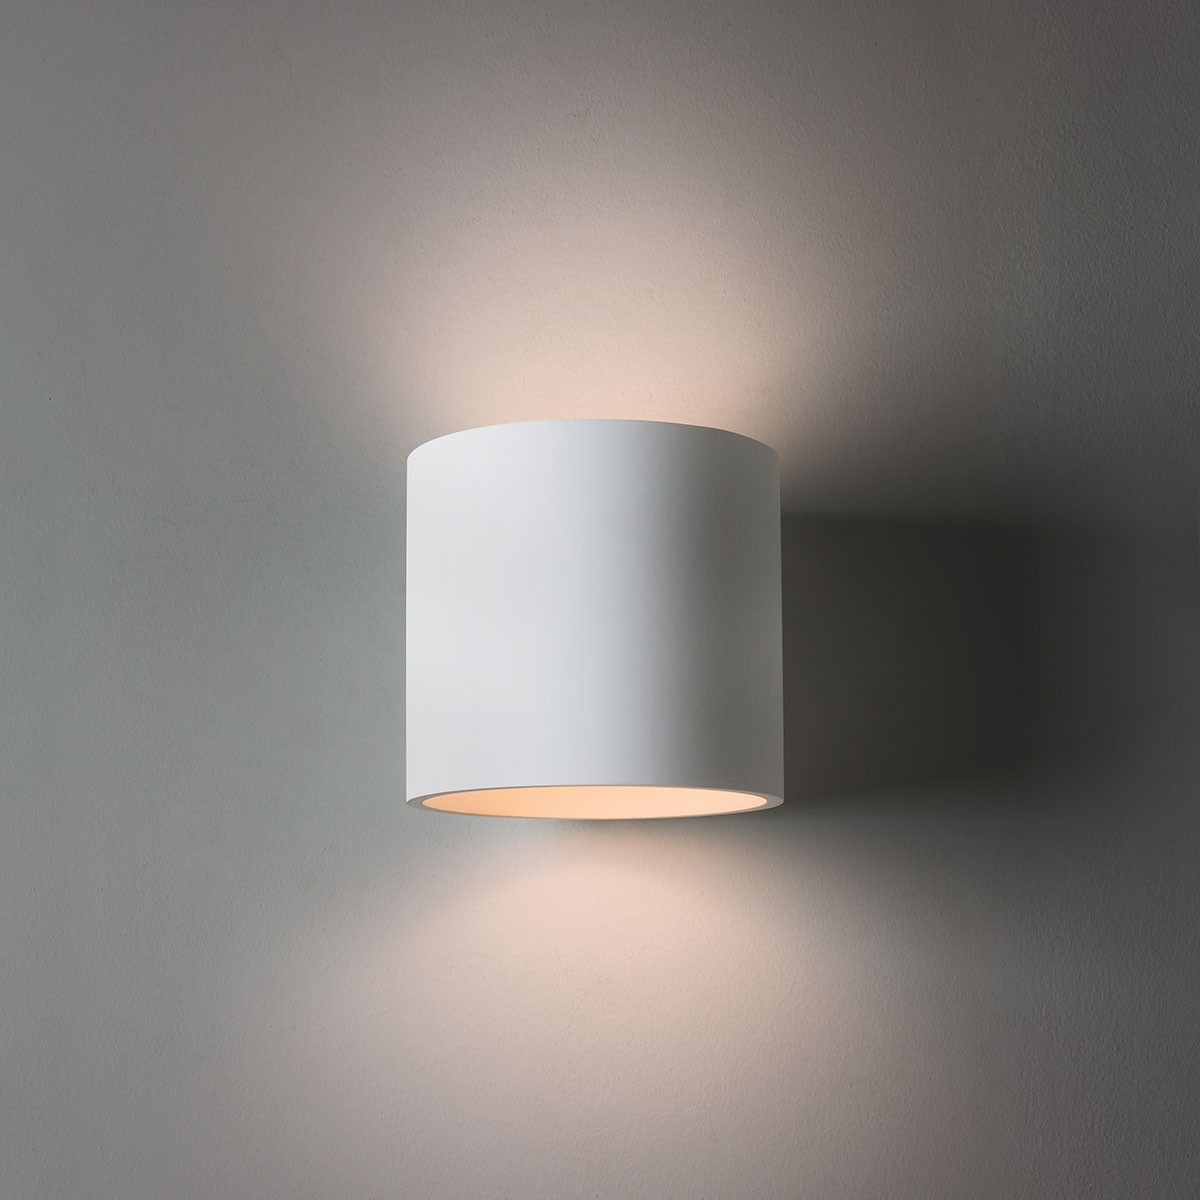 Wall Plaster Products : Astro brenta plaster wall light at uk electrical supplies